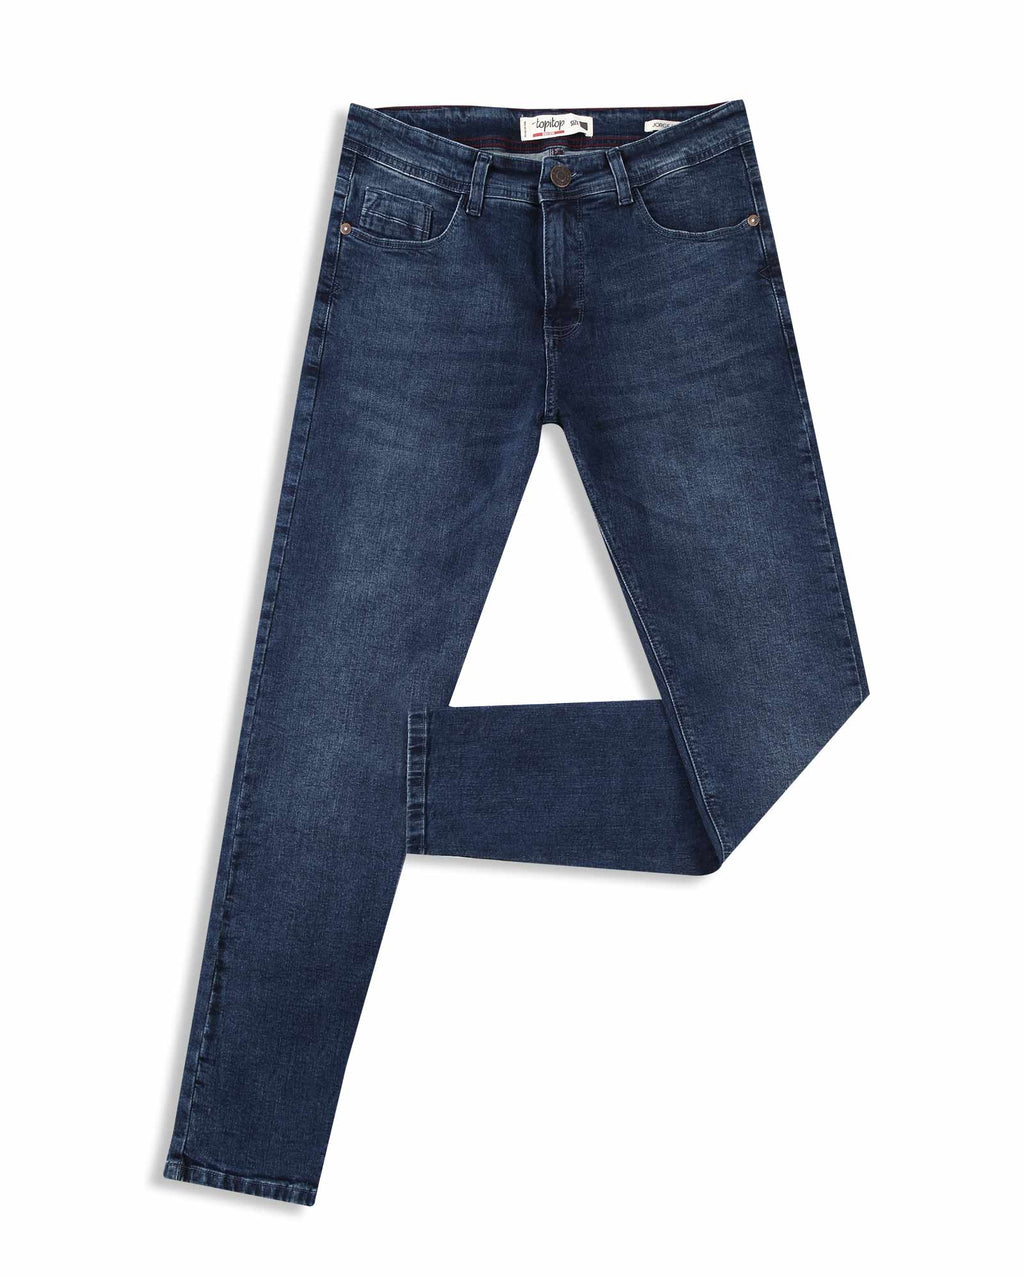 Jean Skinny Hombre Azul Oscuro